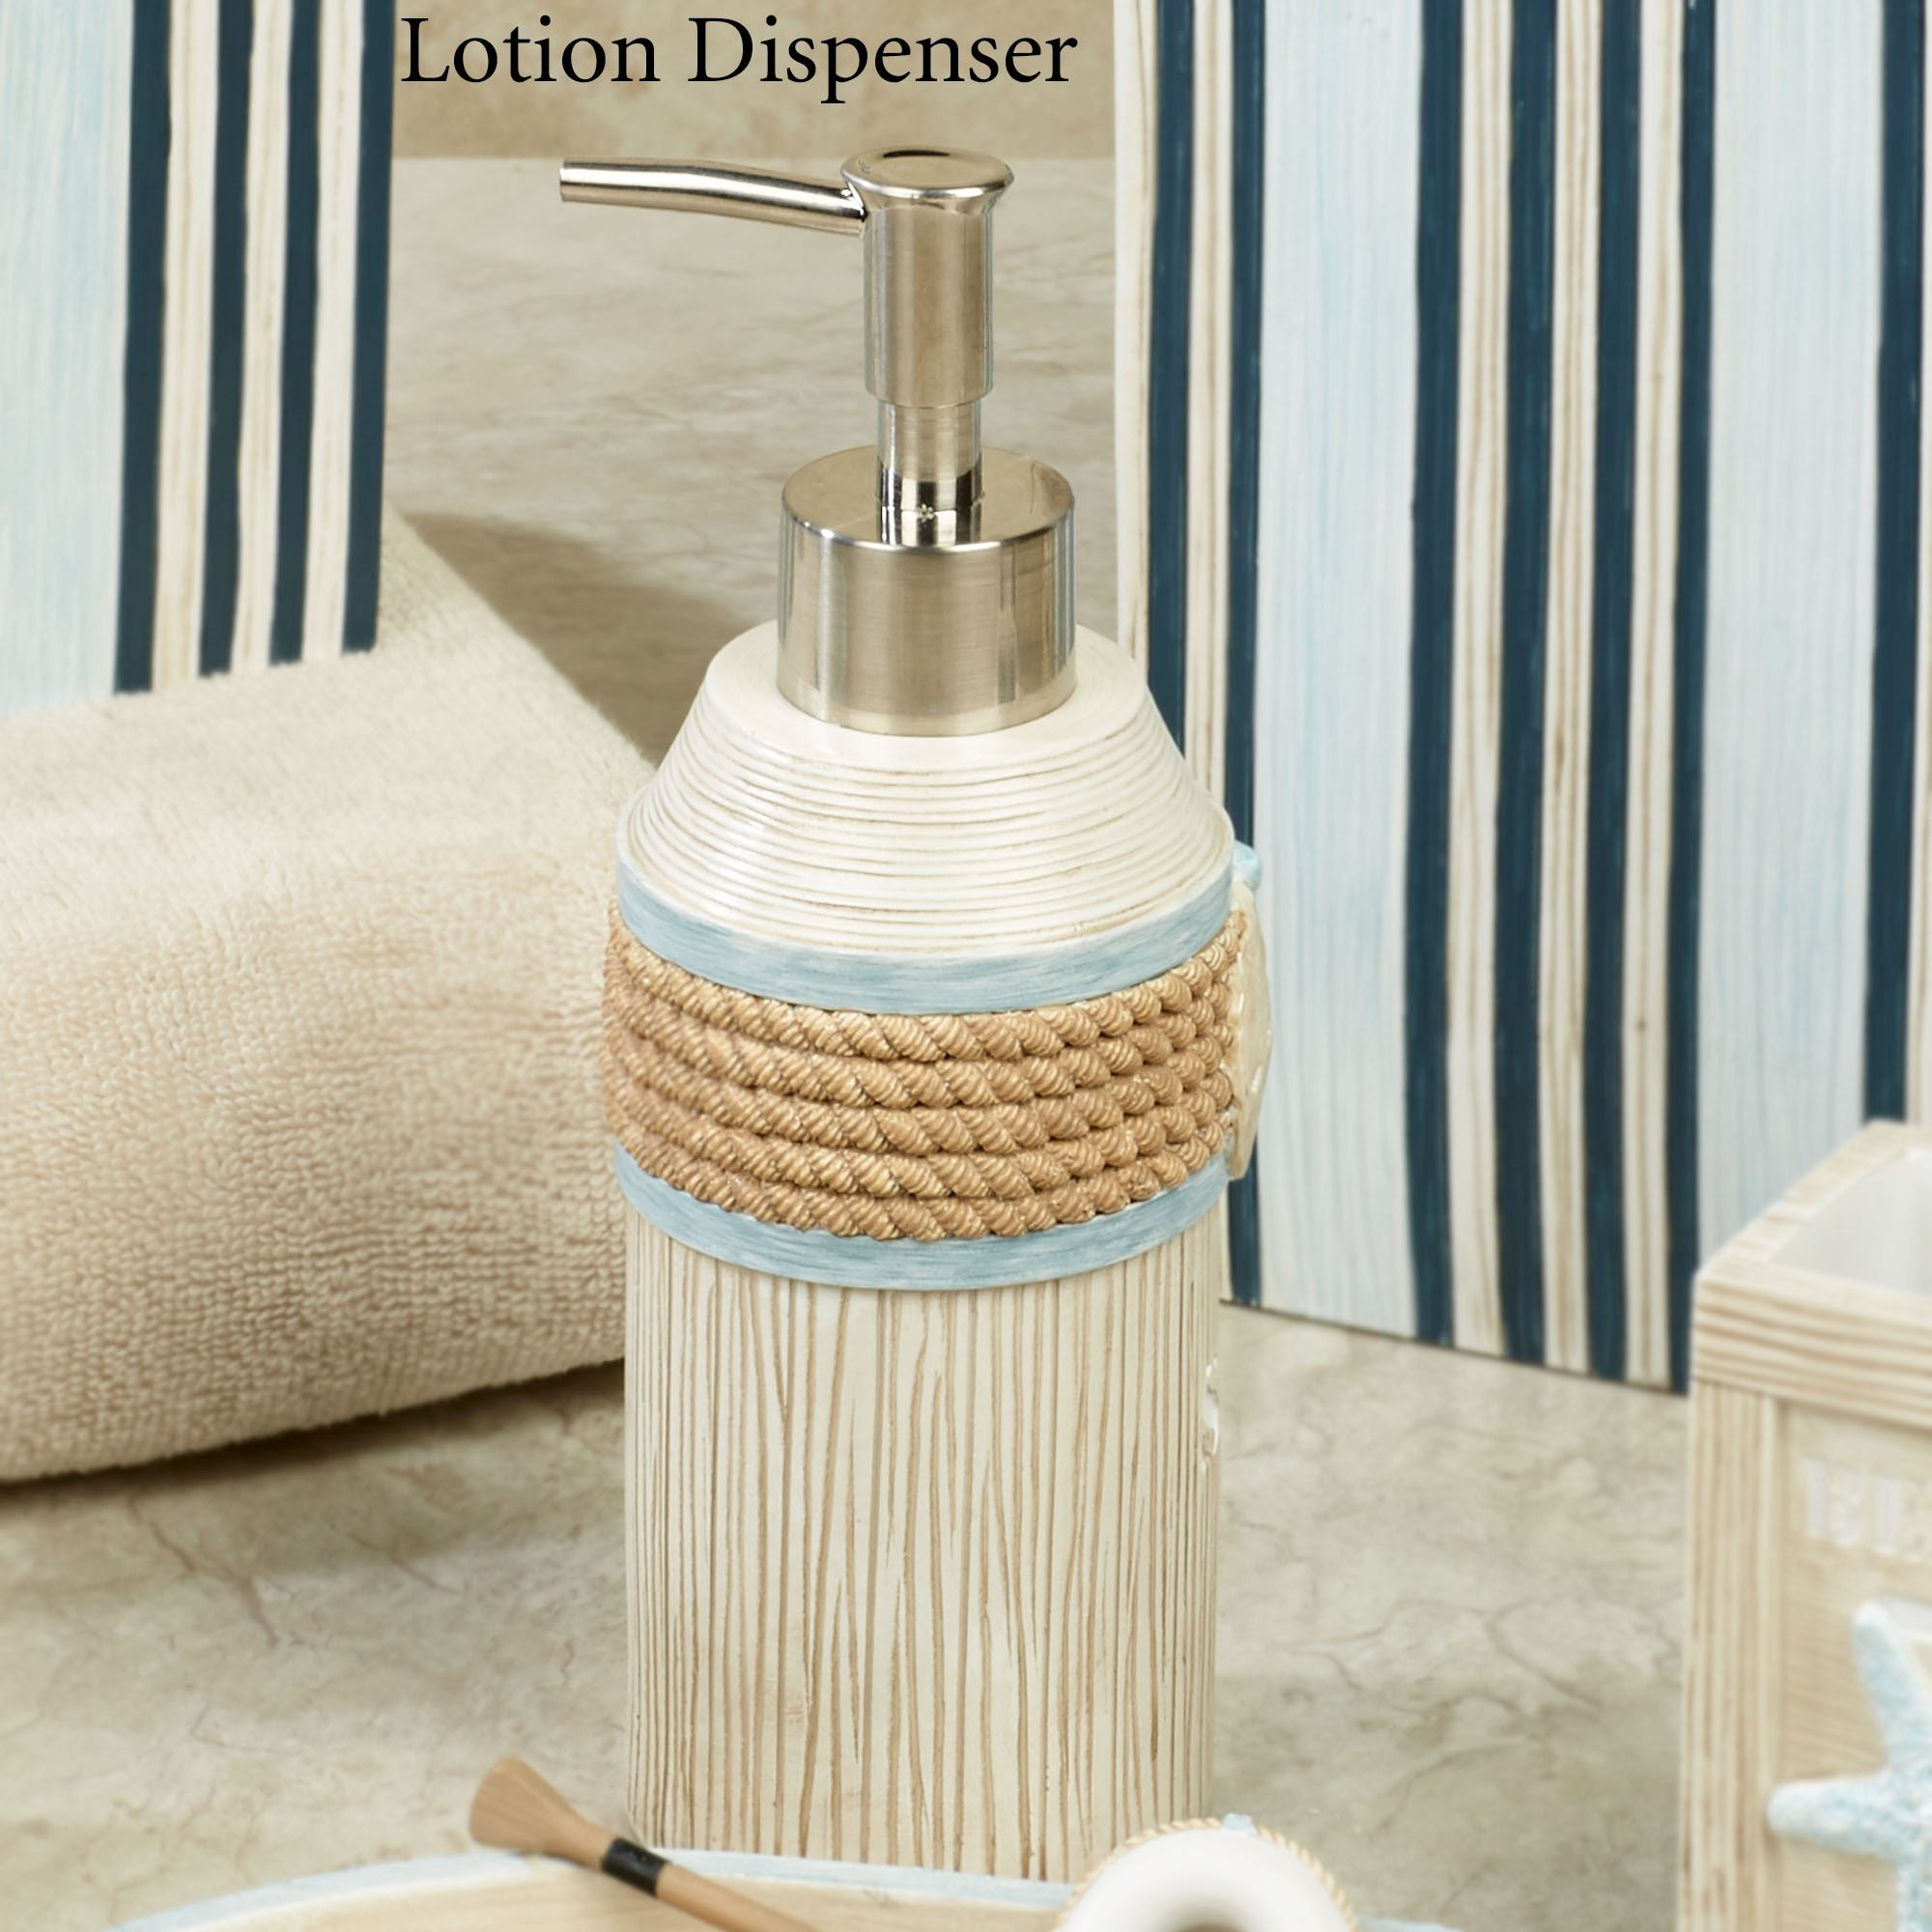 Seaside Serenity Lotion Soap Dispenser Light Blue Coastal Bath Accessories